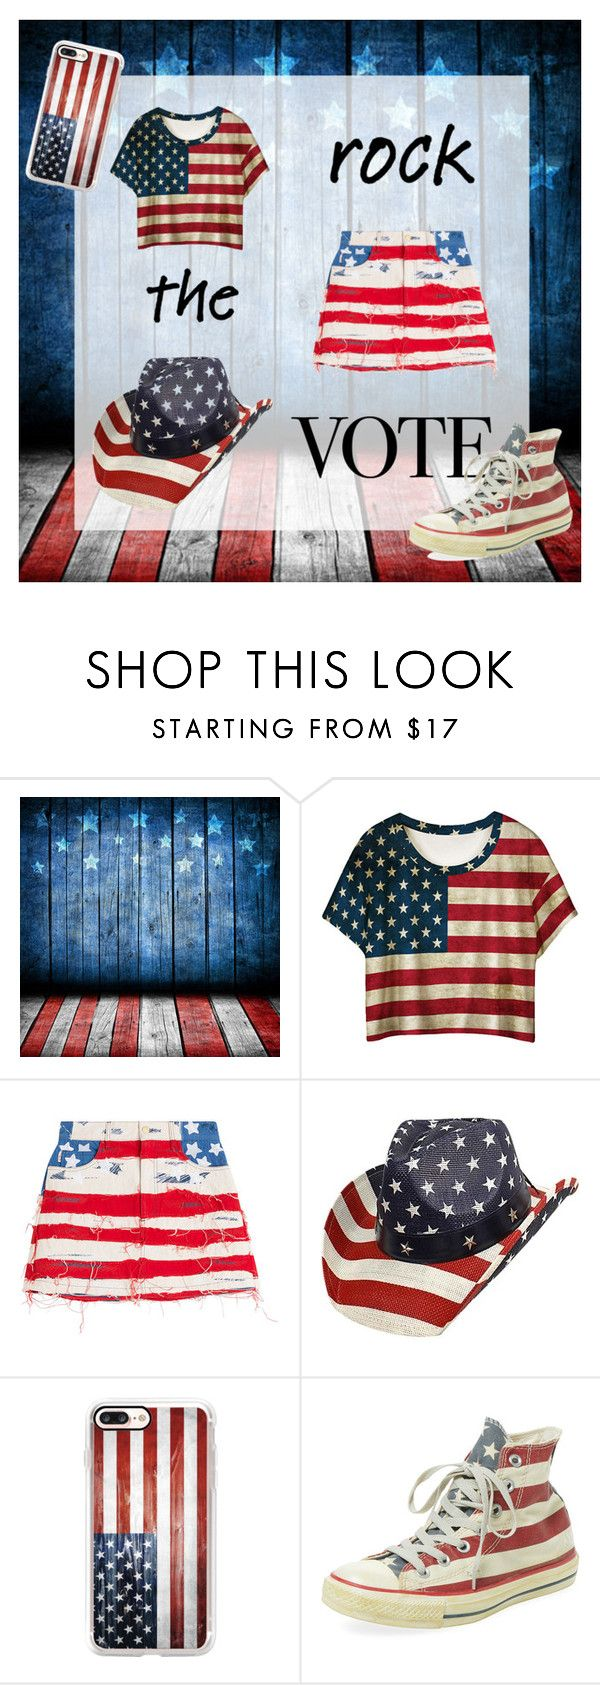 """""""Purely Patriotic"""" by istanbul-was-constantinople ❤ liked on Polyvore featuring Marc Jacobs, Casetify, Clinical Care Skin Solutions, redwhiteandblue, flag, starsandstripes, murica and rockthevote"""